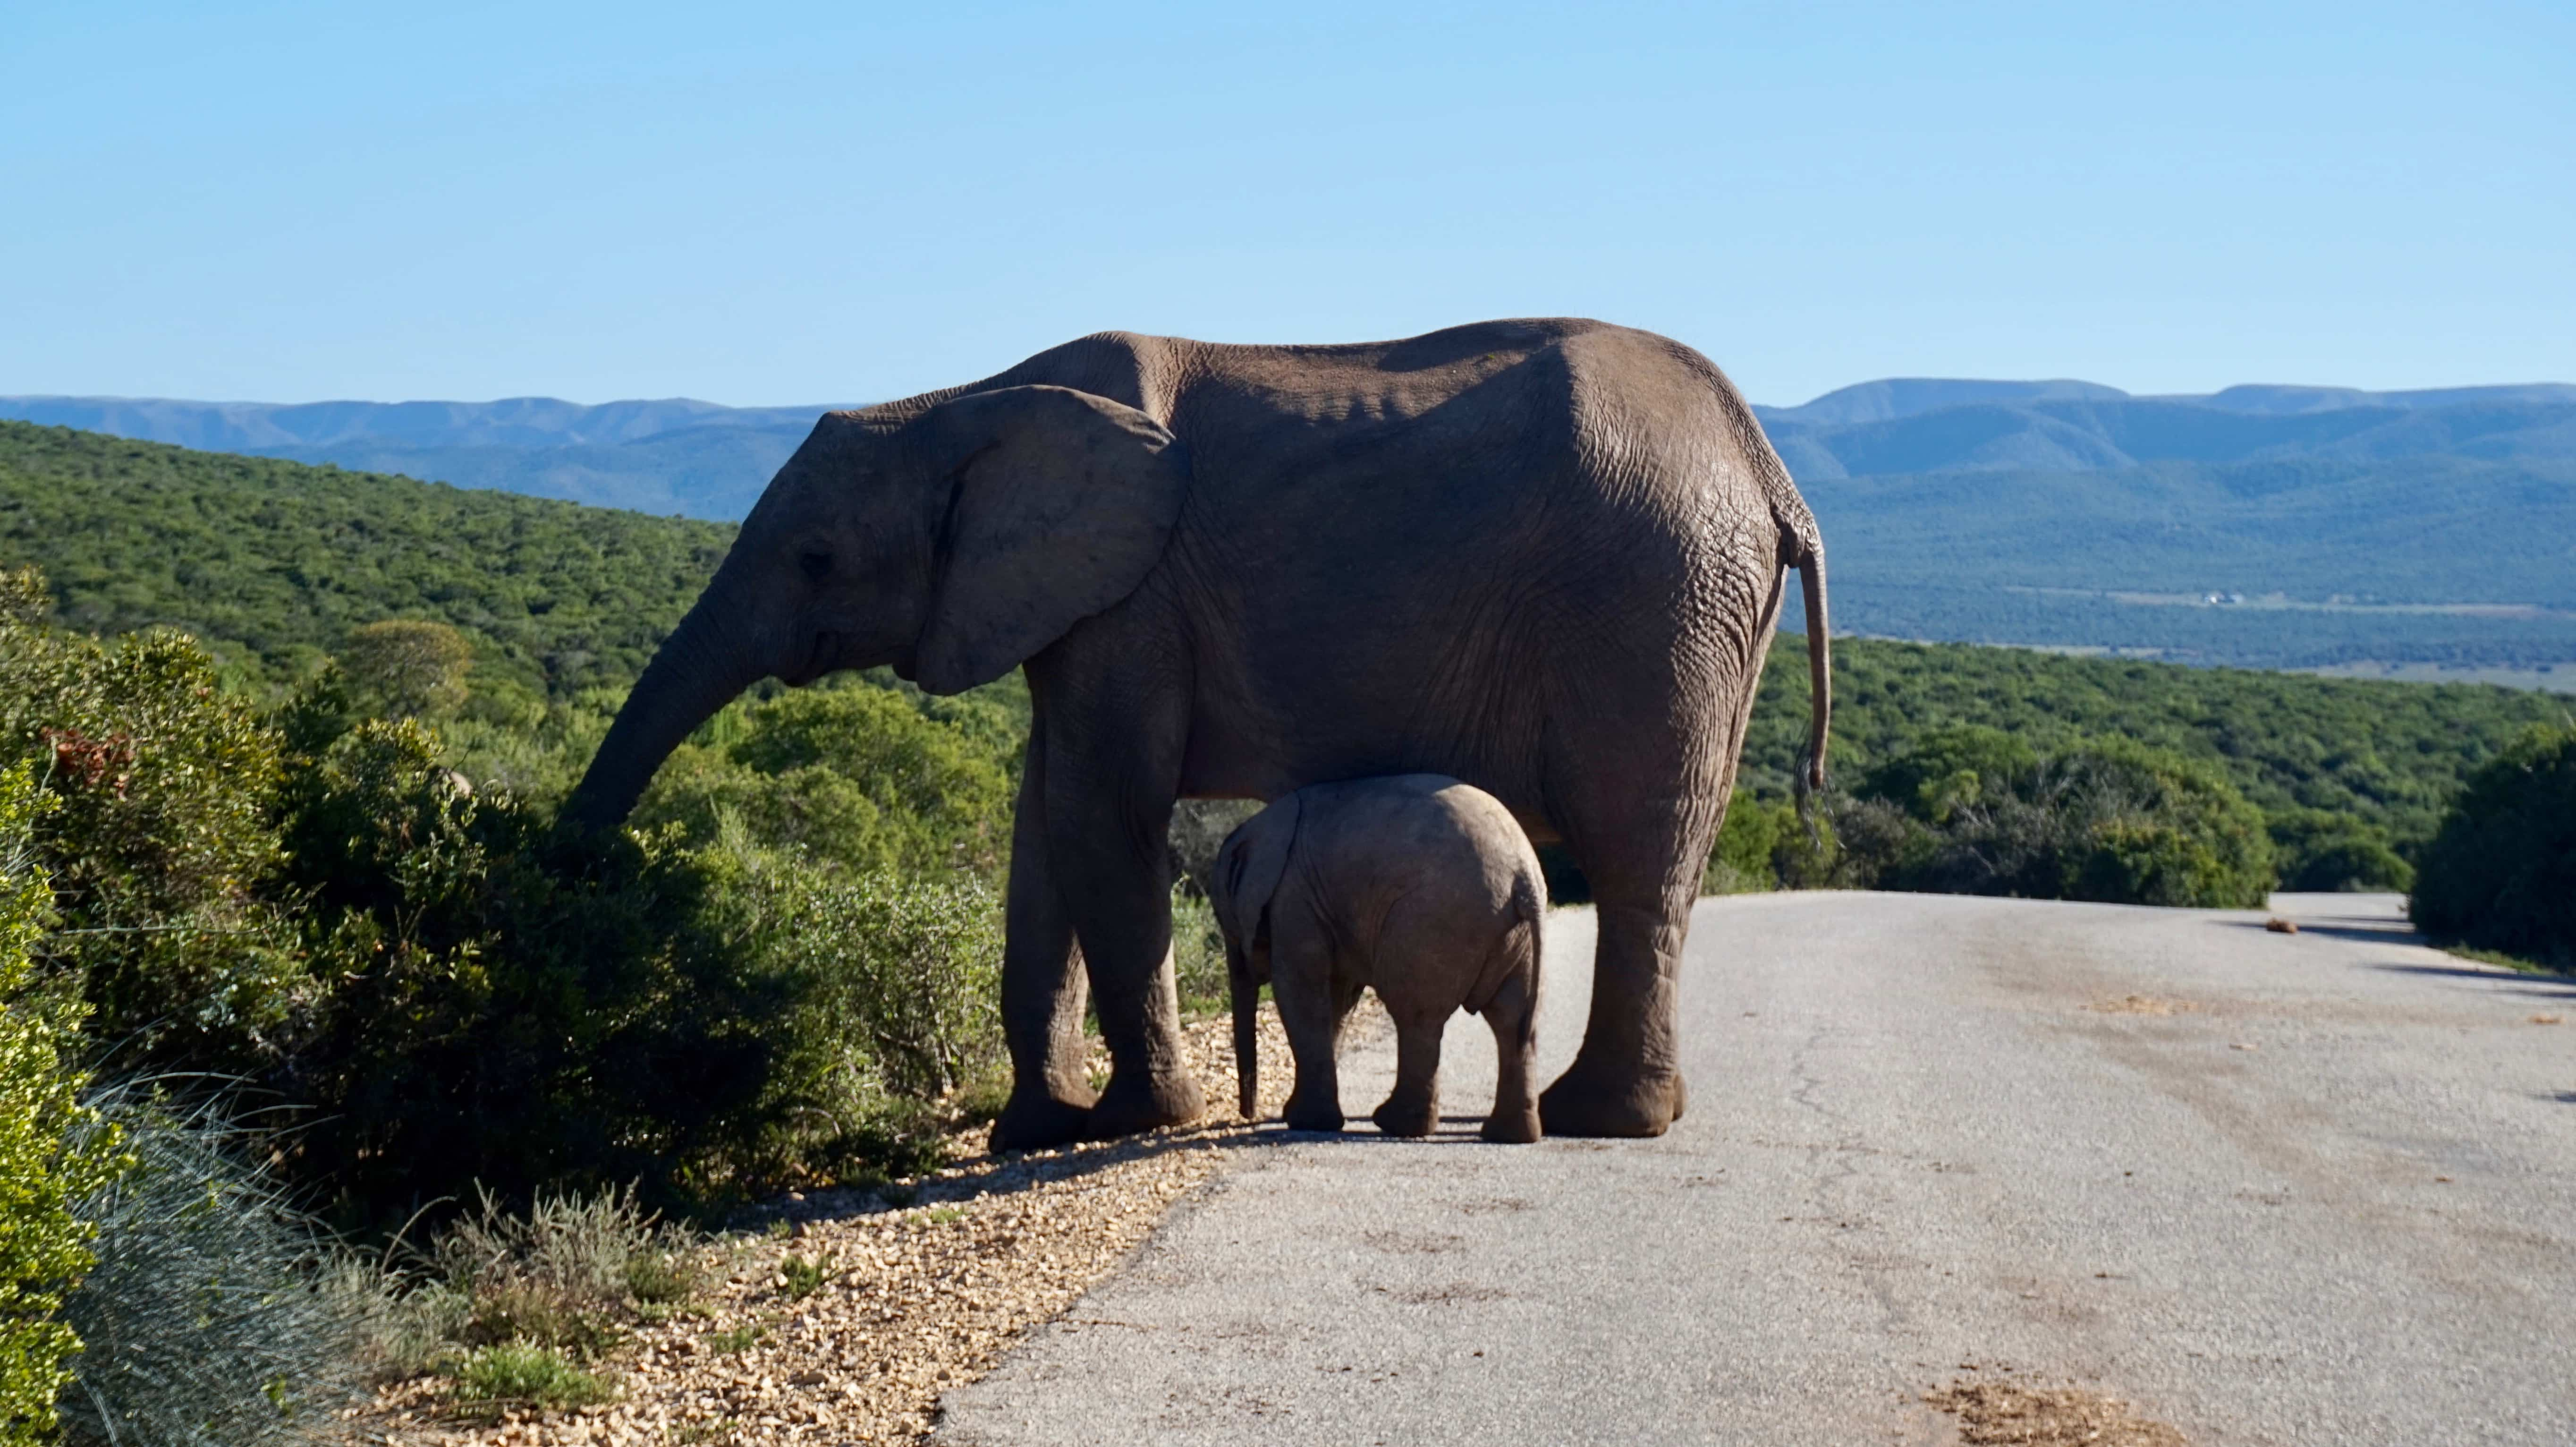 Mother and baby elephant on the road at Addo Elephant National Park